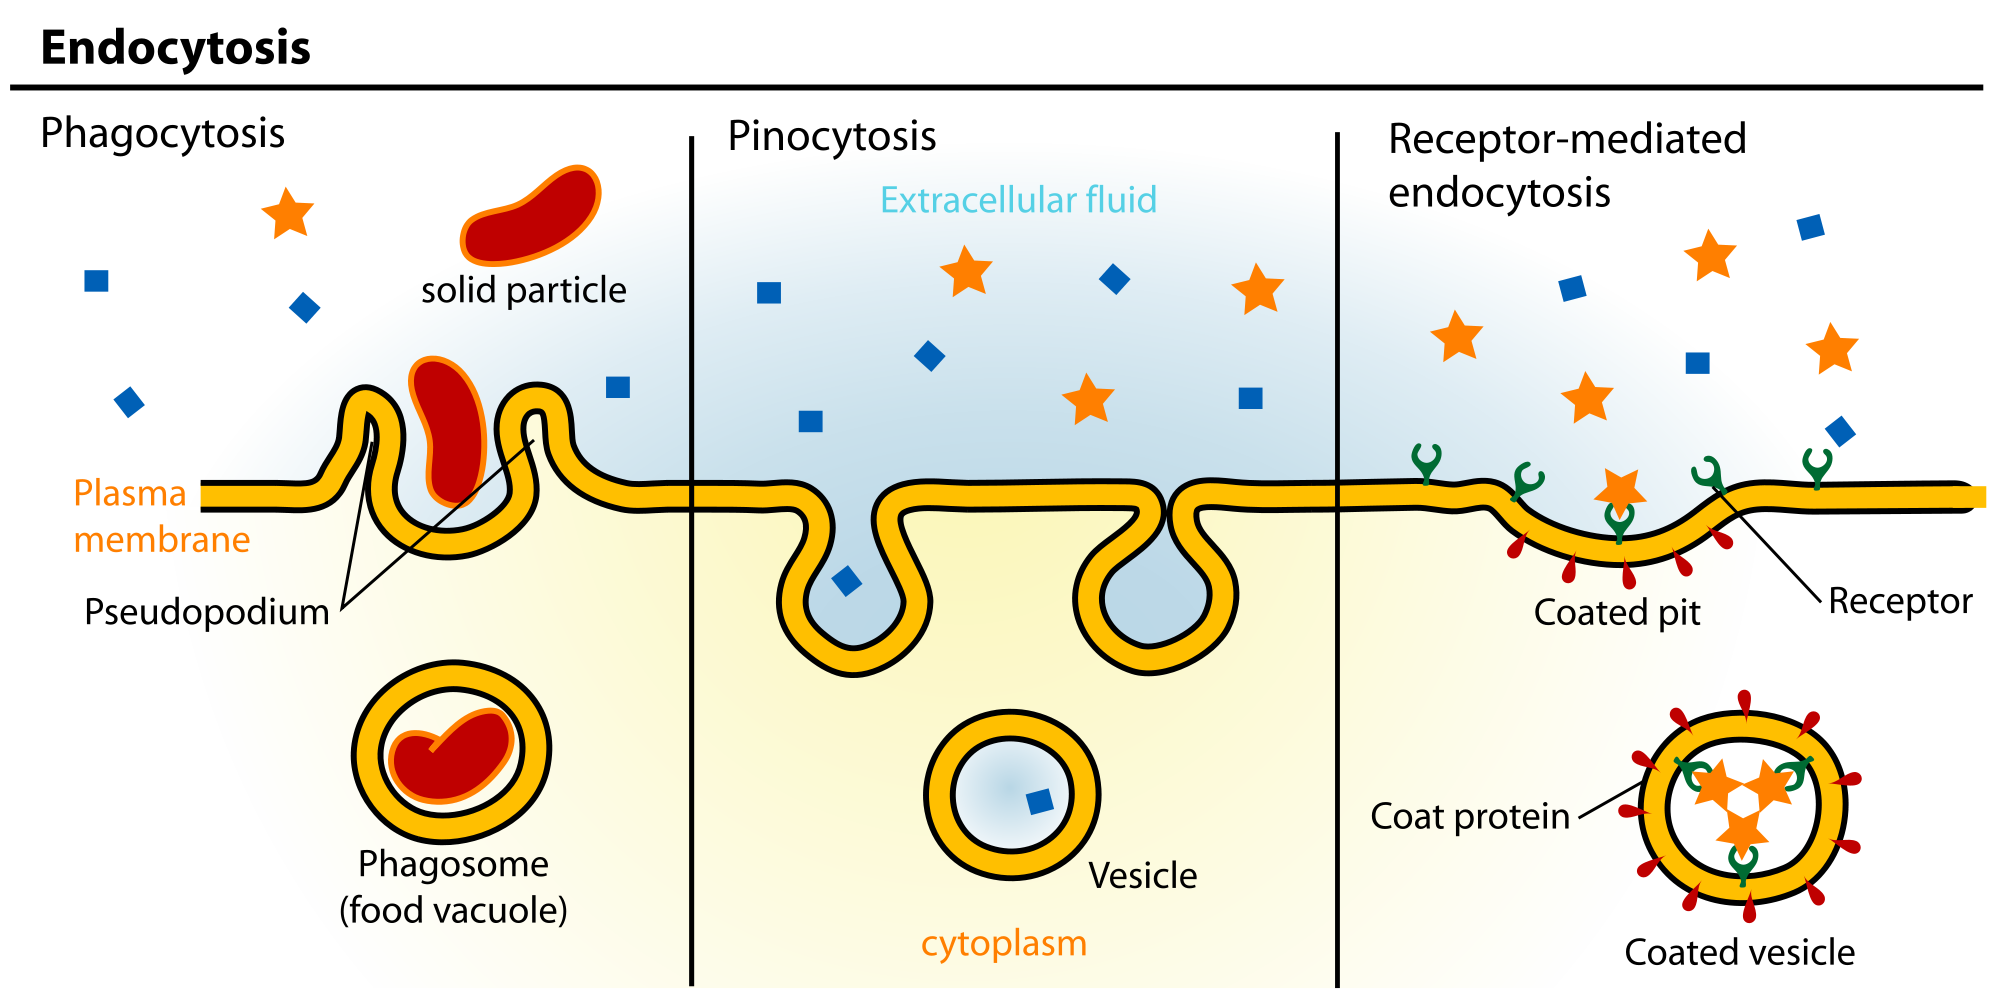 2000x1000 Endocytosis